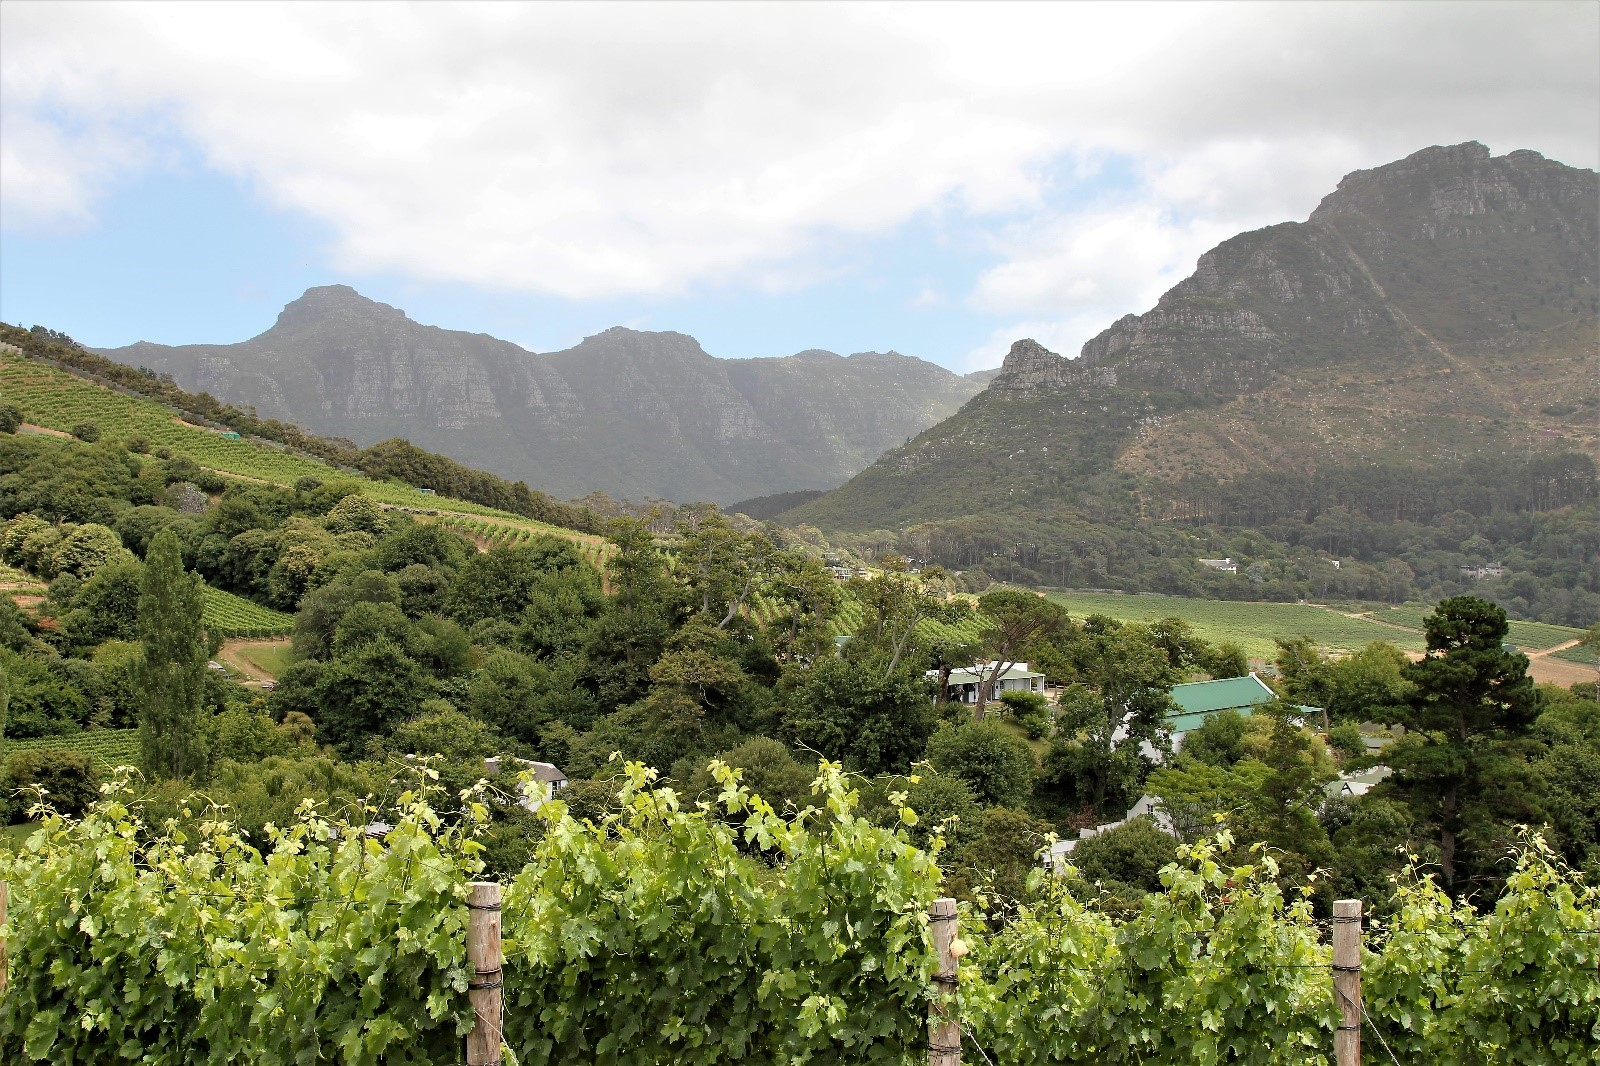 Views of Constantia Valley taken at Eagles Nest Winefarm in the Cape Winelands of South Africa on to